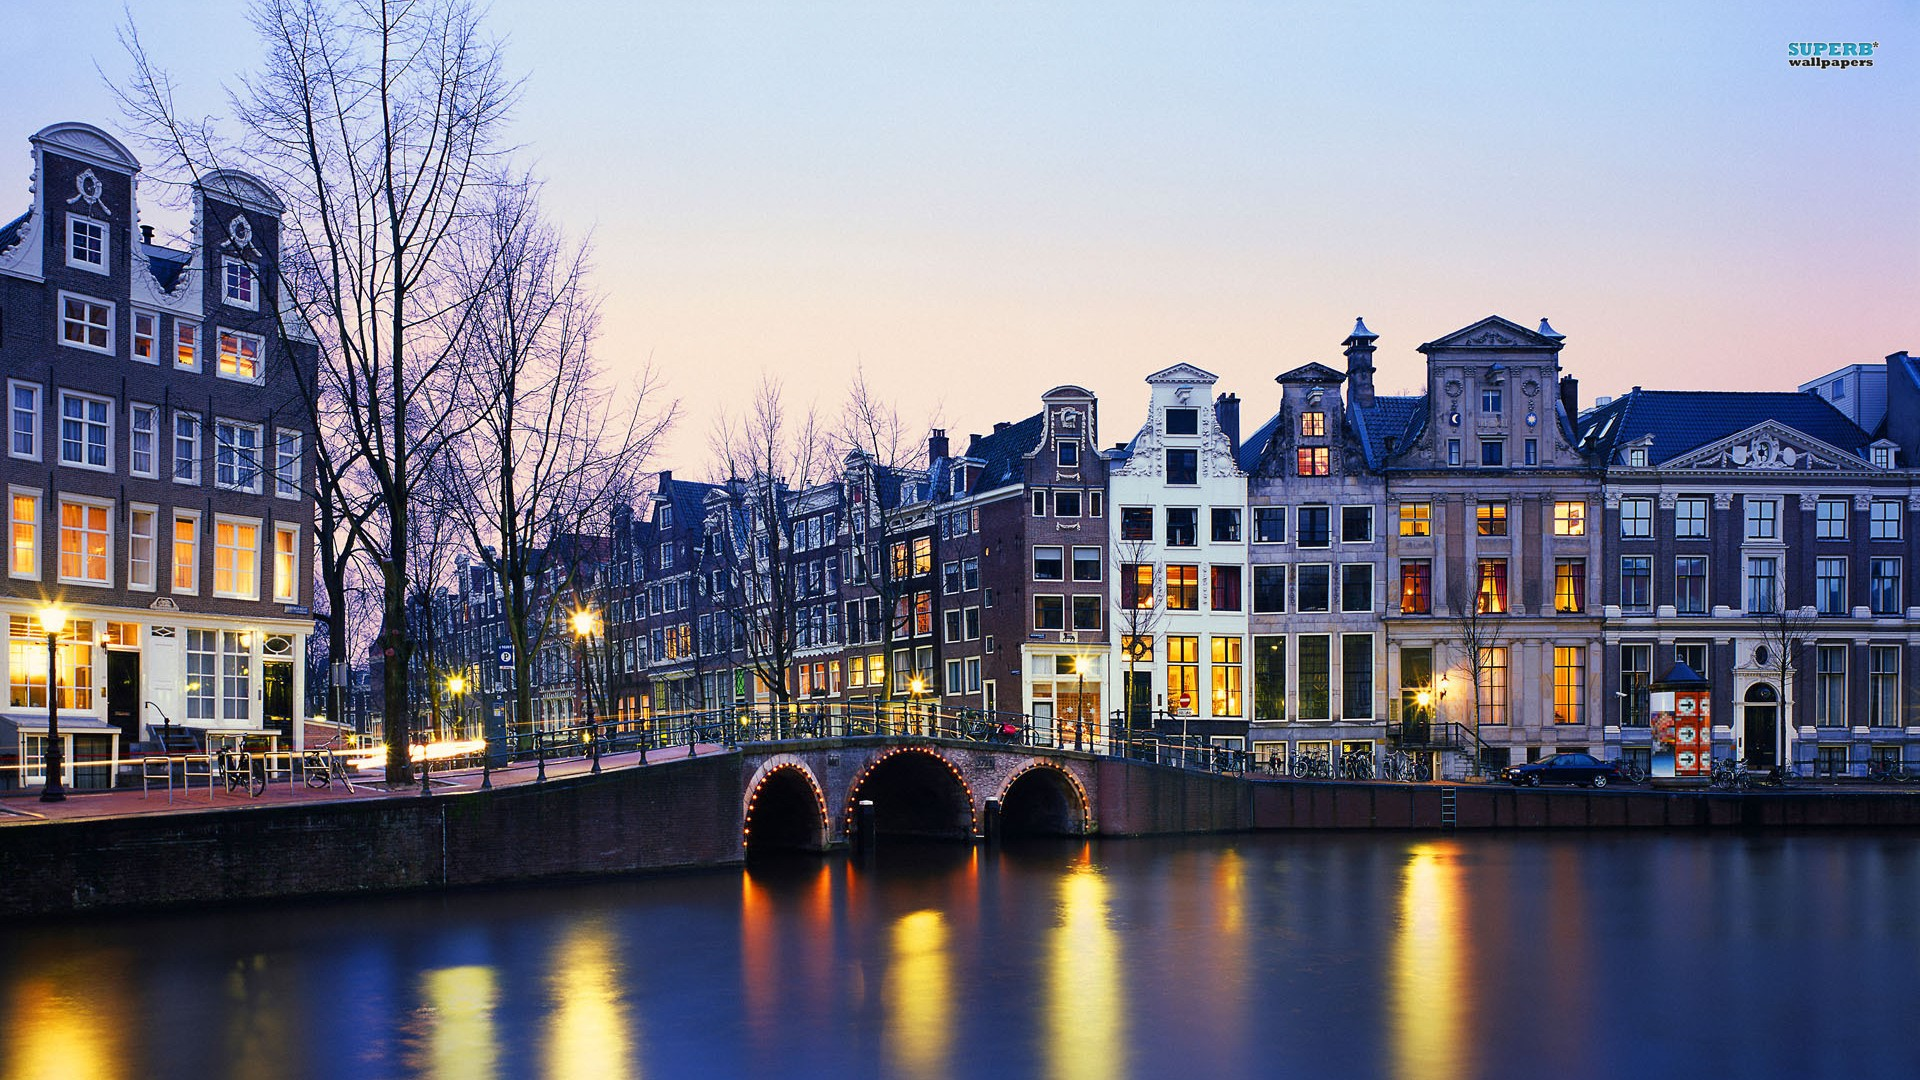 Amsterdam Computer Wallpapers